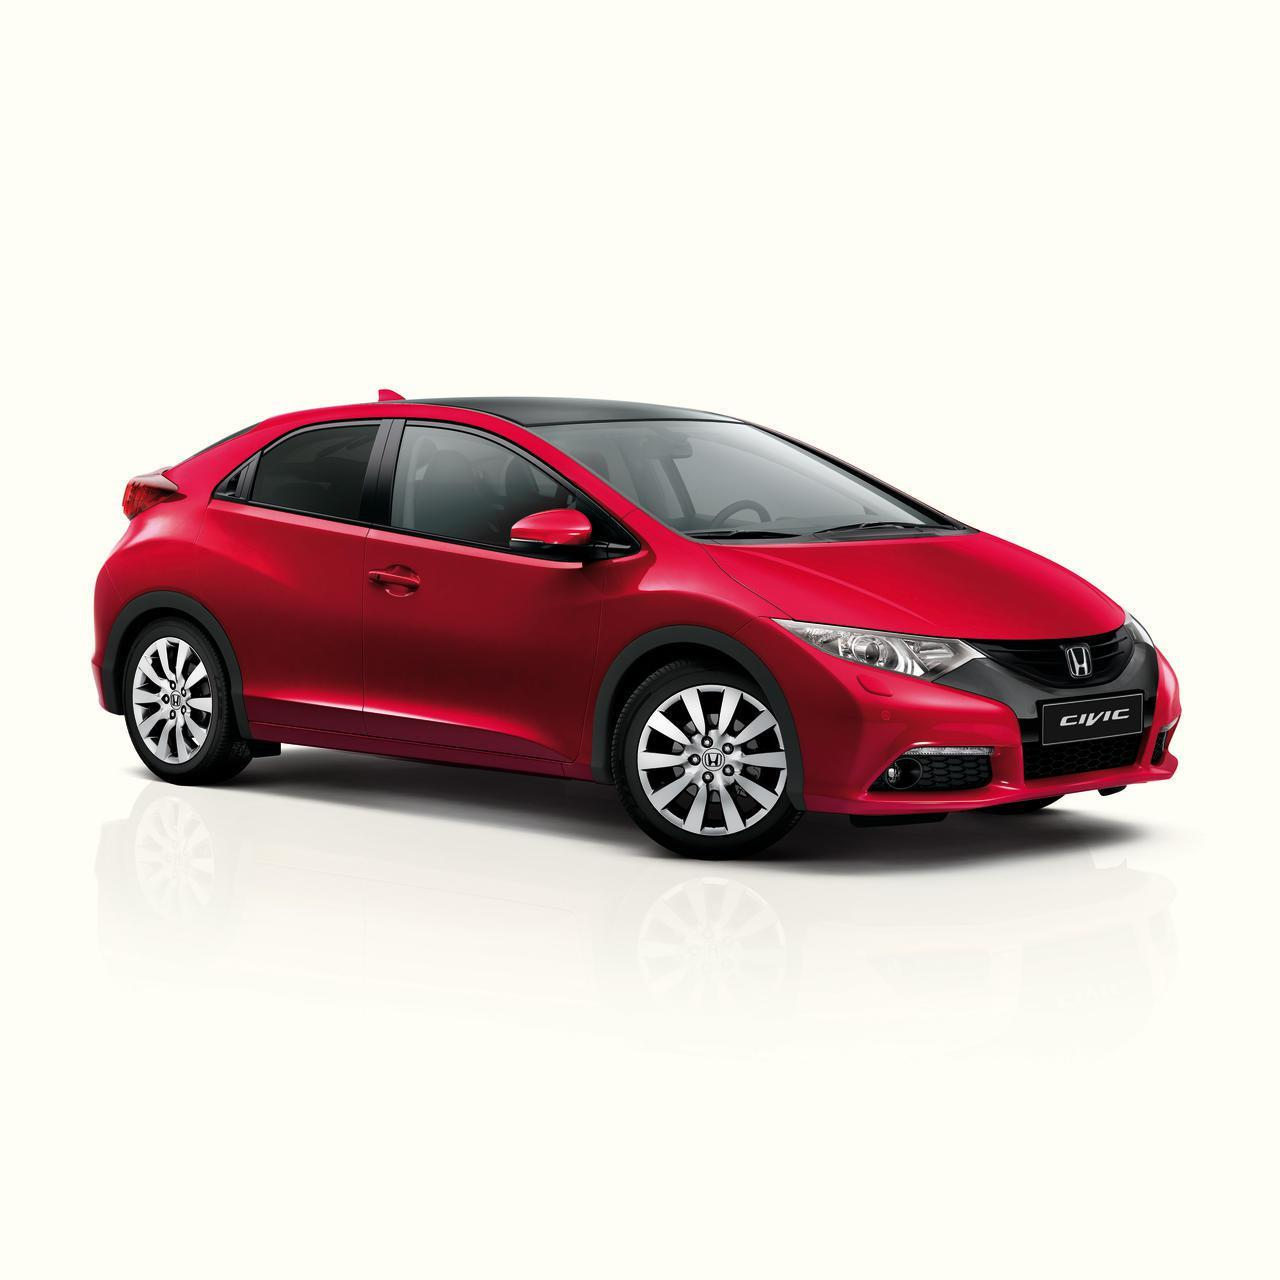 Foto de Honda Civic 2012 (49/153)